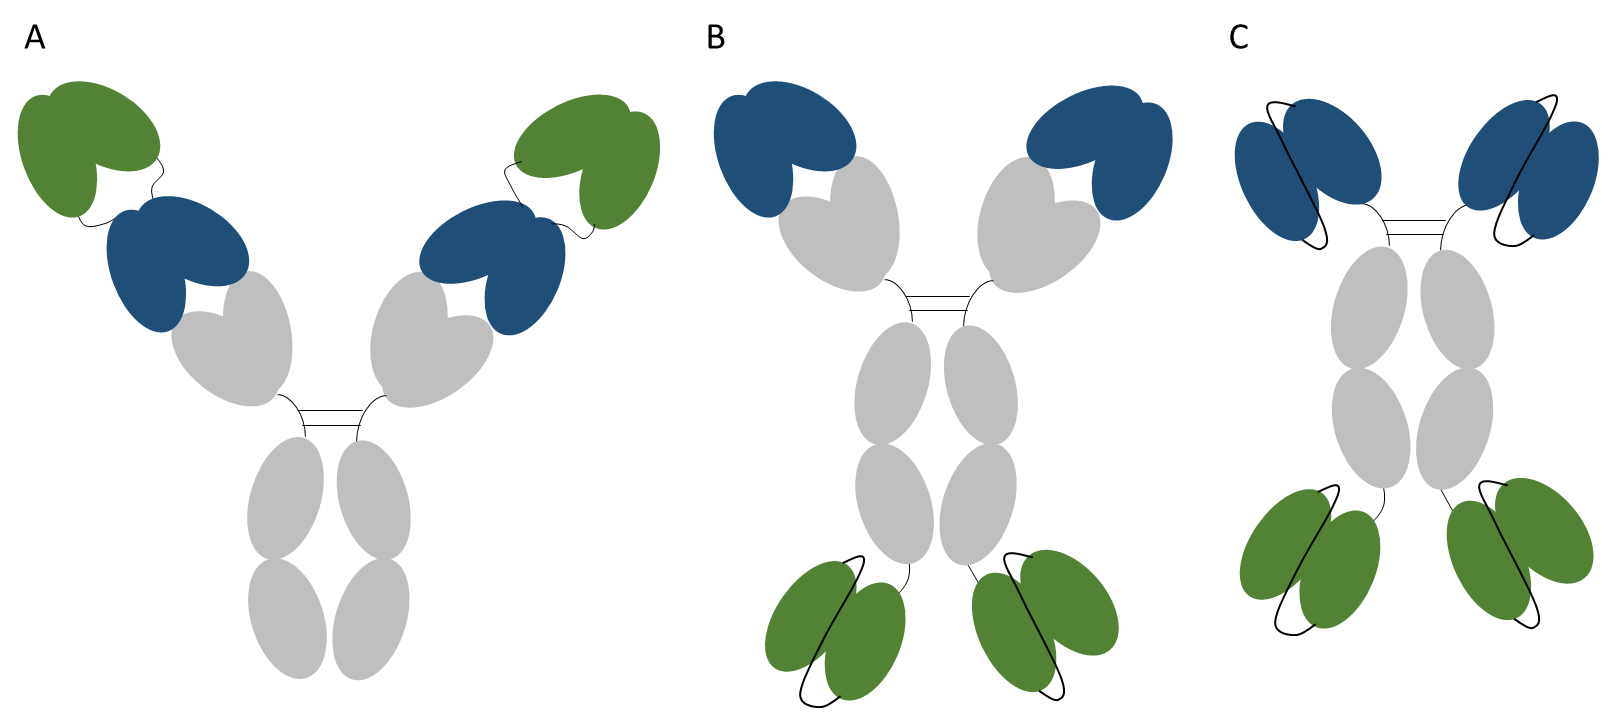 Figure 3. Bispecific antibody fusions. Representations of a dual variable domain antibody (A), an IgG-scFv (B) and a scFv-Fc-scFv (C). In each format one pair of variable domains is shown in blue and the second pair in green. All formats shown are bispecific and bivalent.